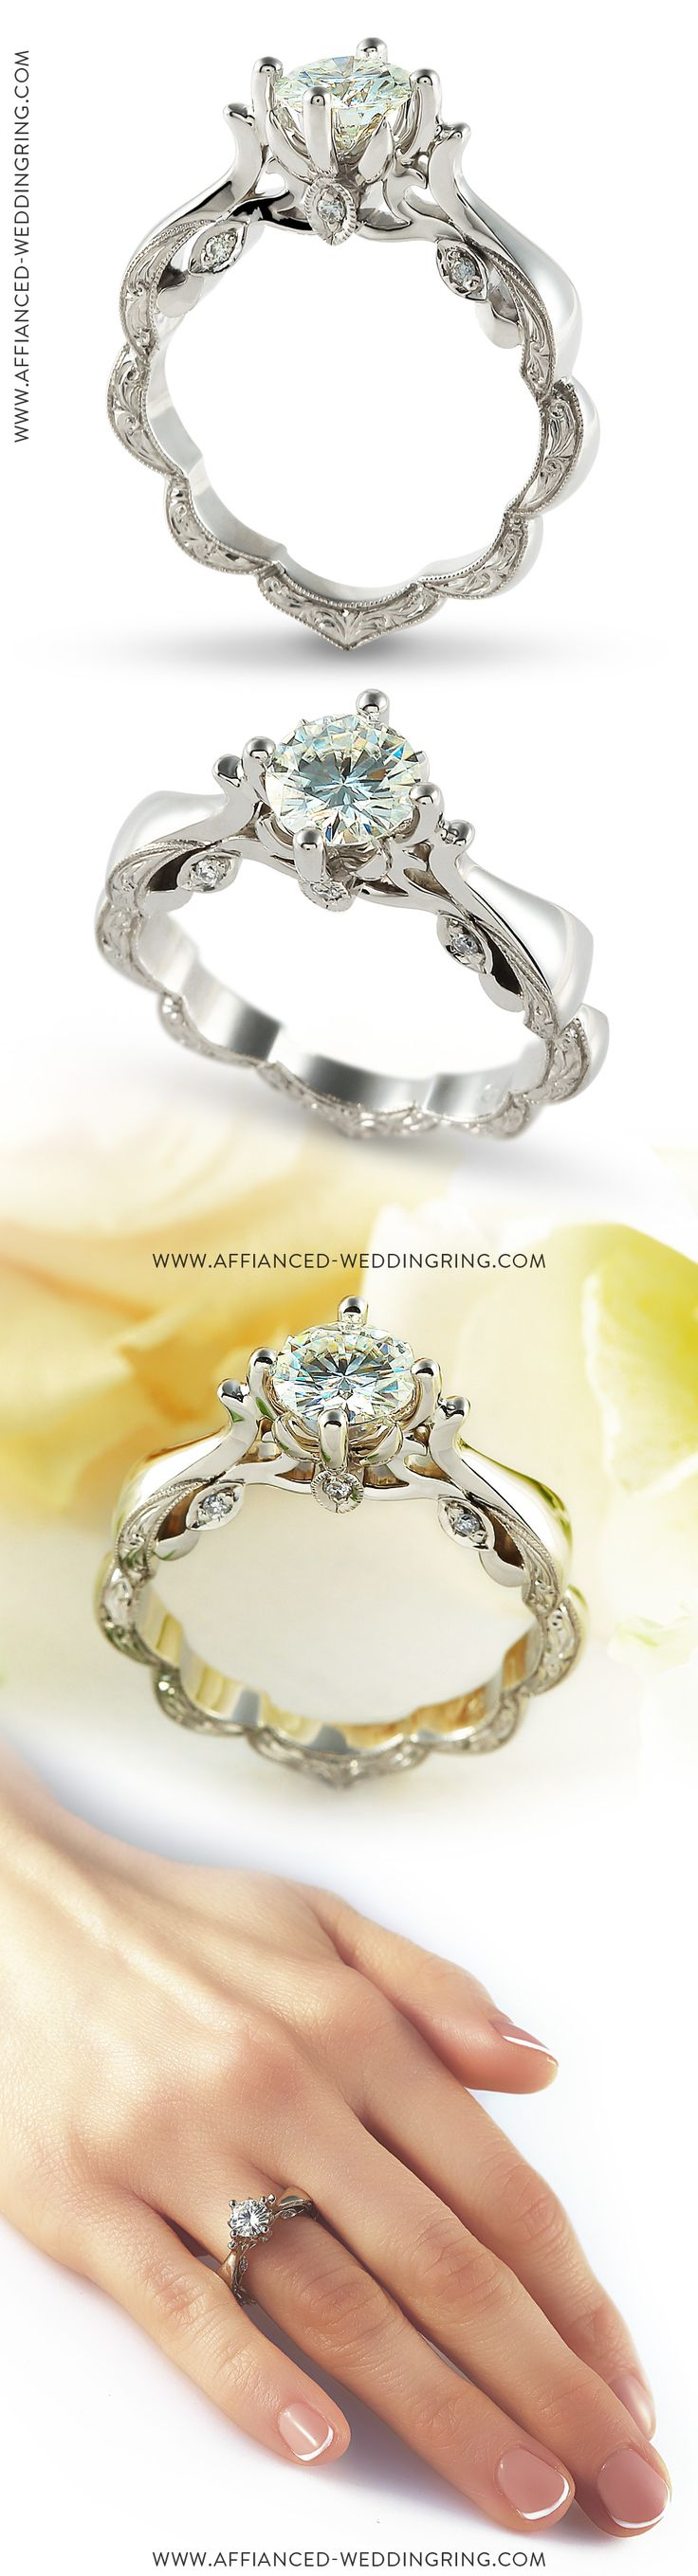 Extreme look white gold engagement ring decorated with center 1ct diamond and 6 pcs small diamonds.